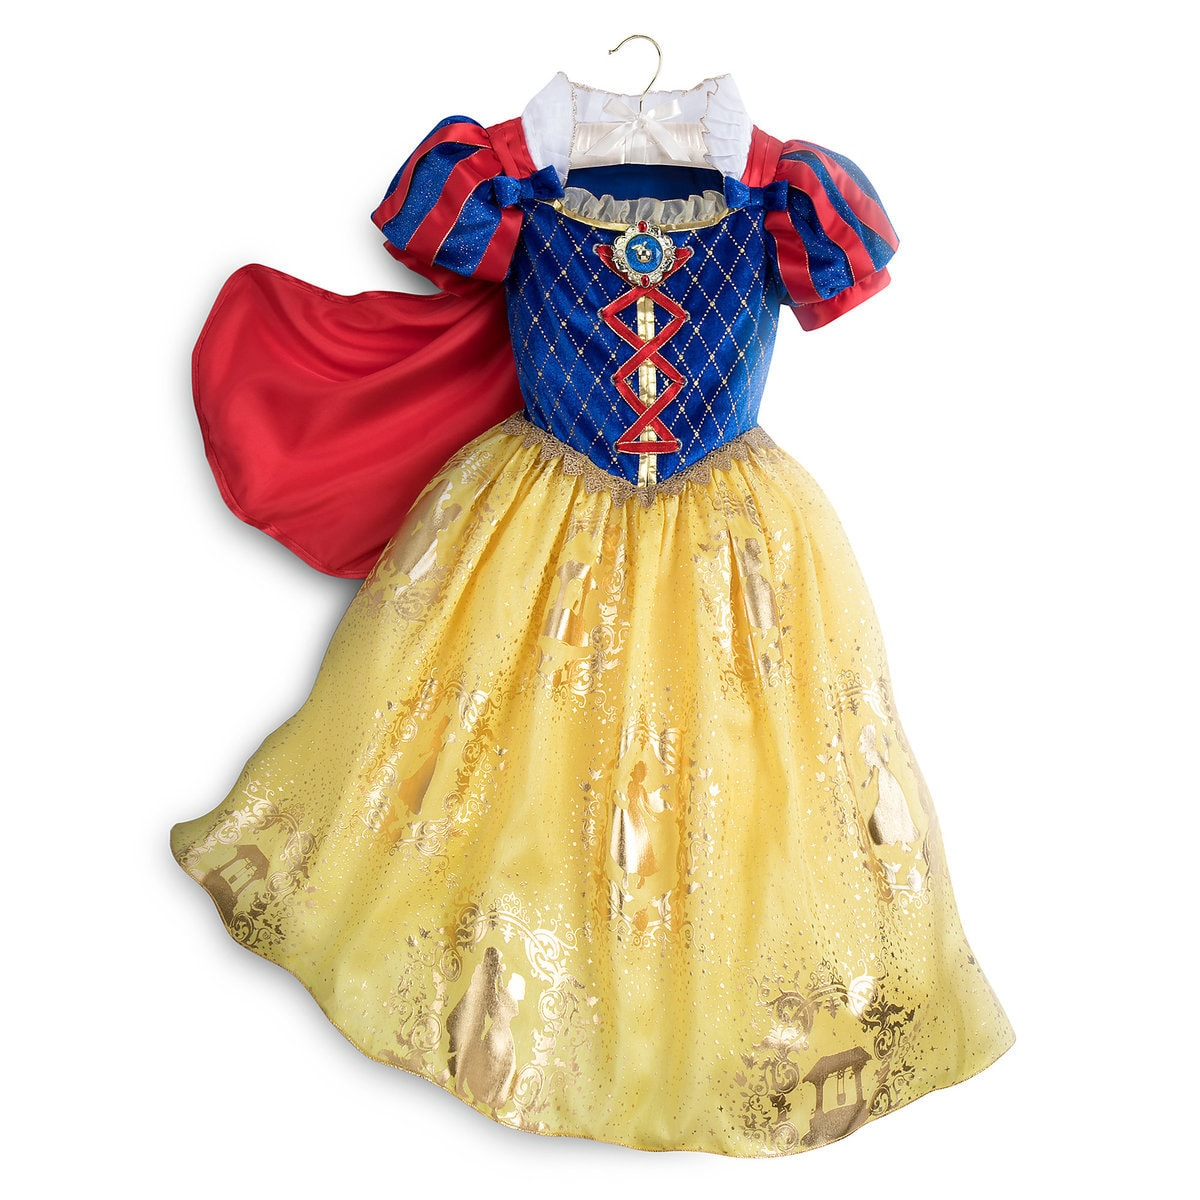 058b65138c Product Image of Snow White Costume for Kids   1